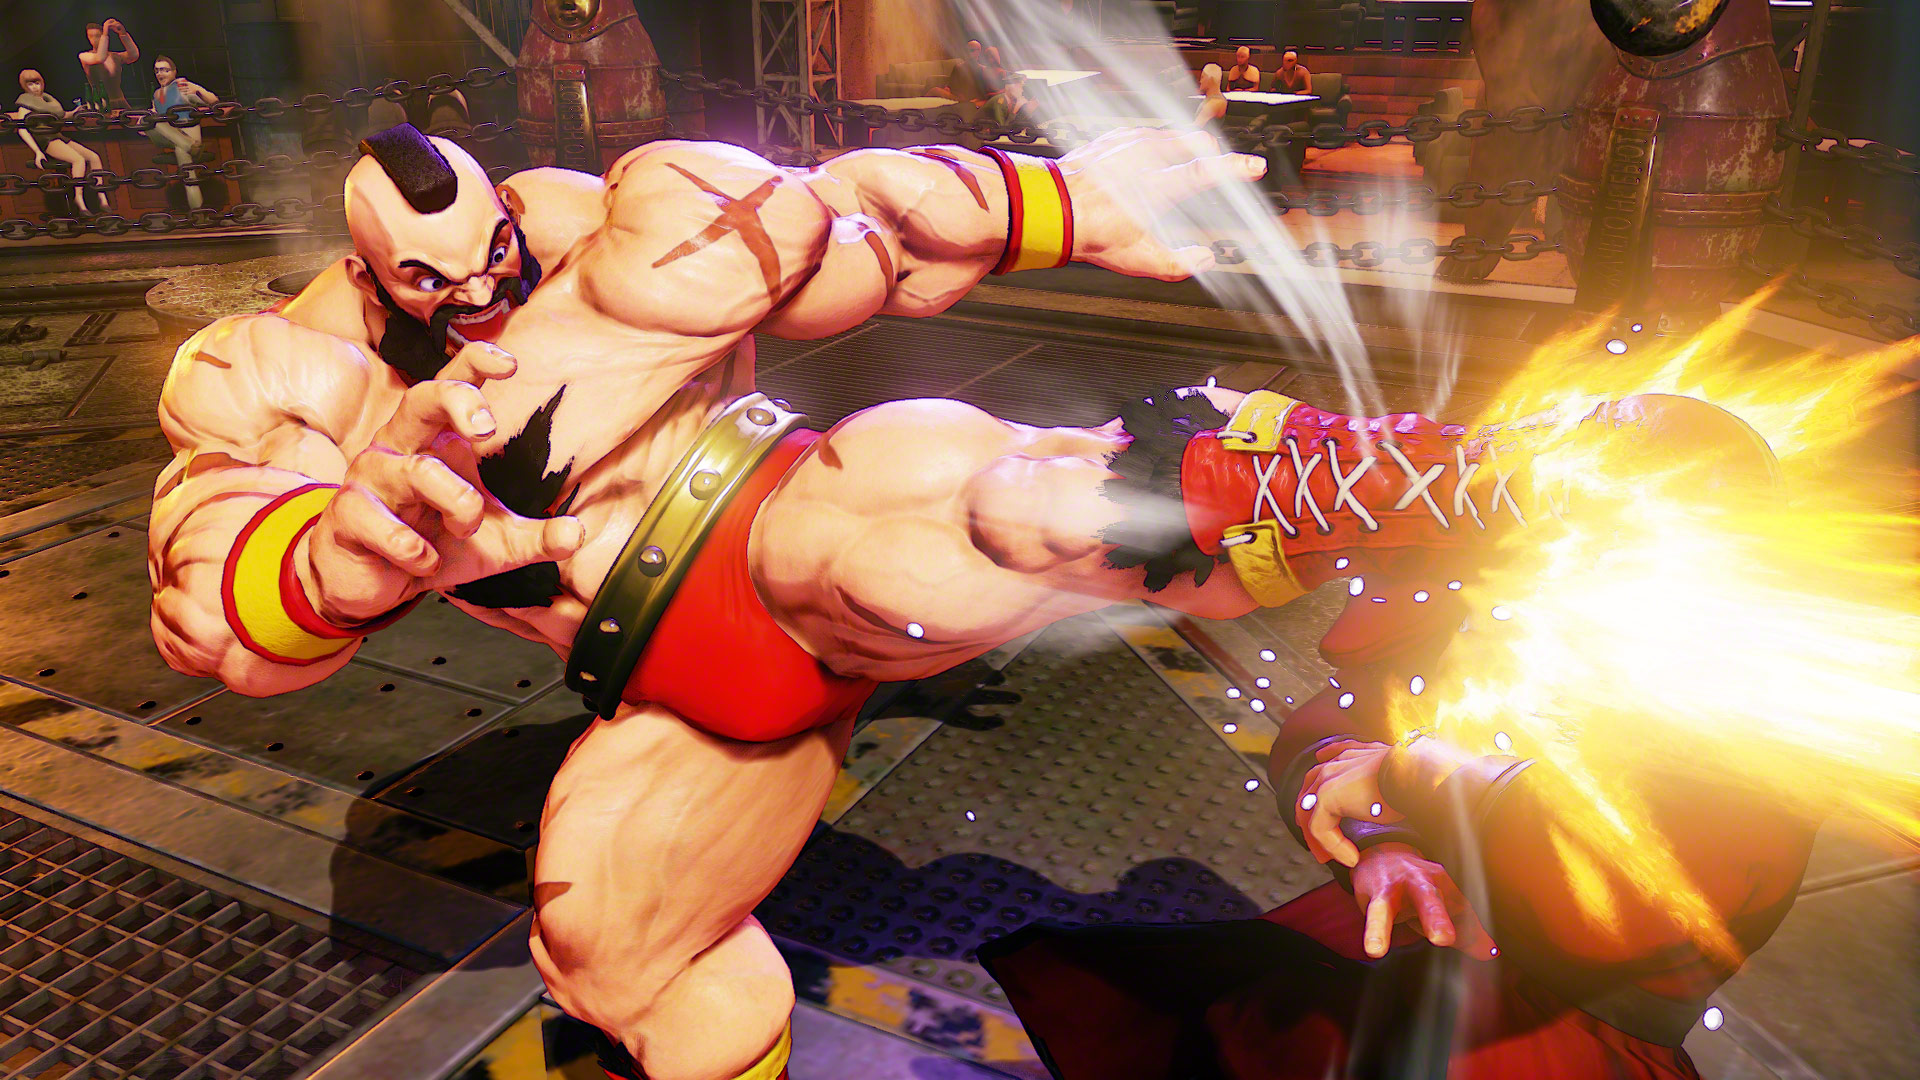 Zangief returns in Street Fighter 5 7 out of 18 image gallery